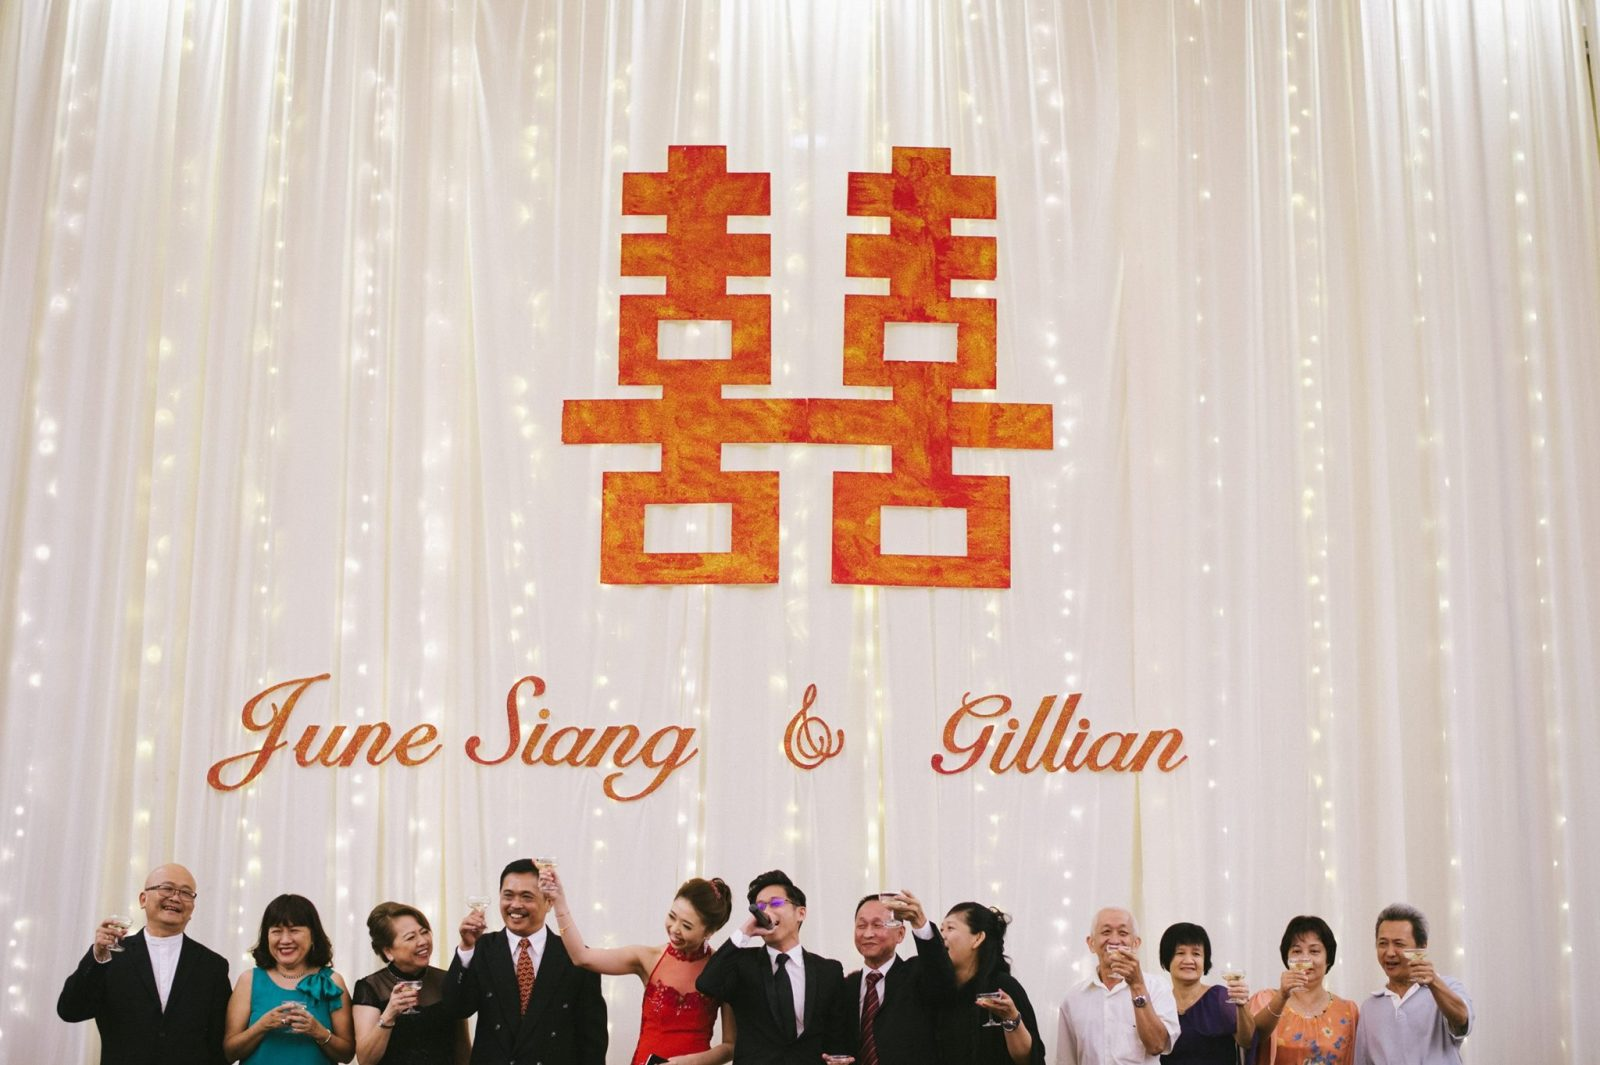 Wedding banquet photography by Irvin Studio